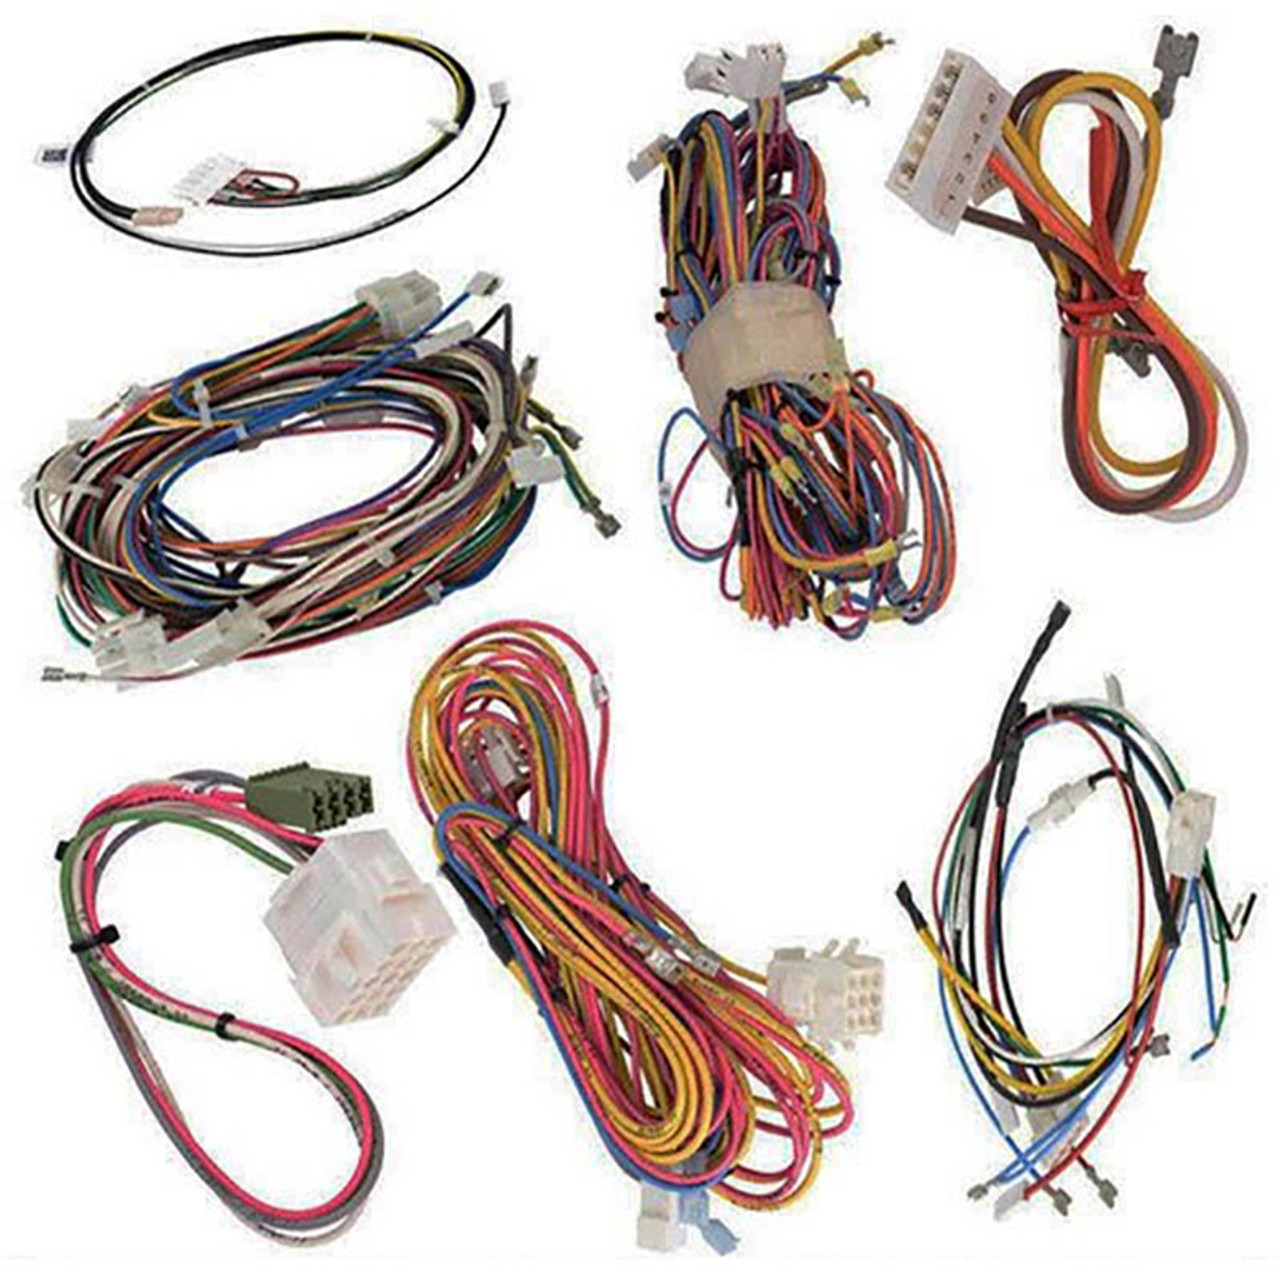 43L06 -- Wiring Harness 9 Pin on